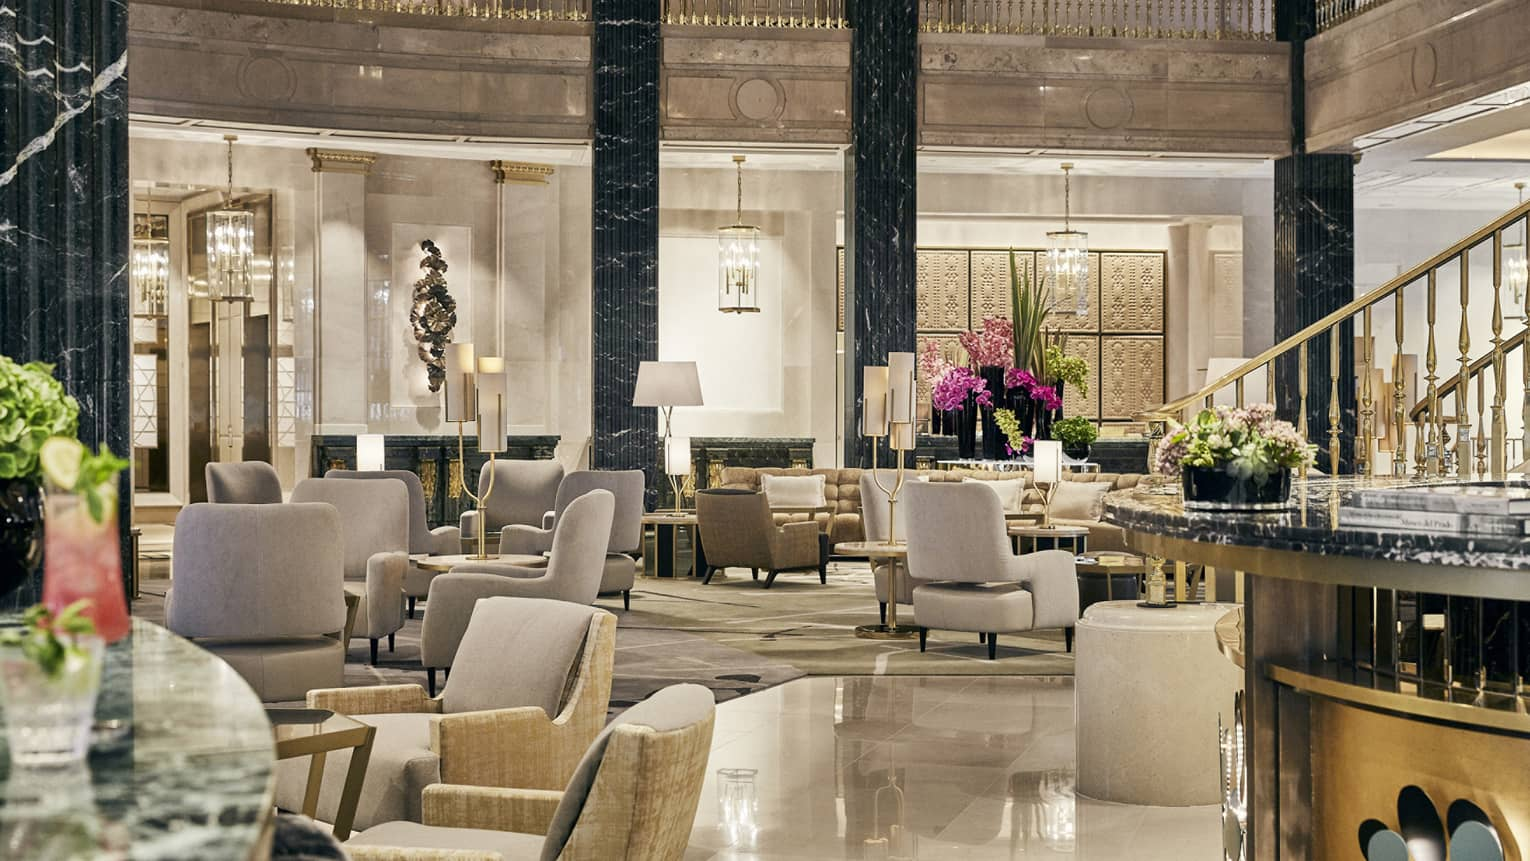 2-story columned lobby with marble flooring, gold accents and leather chairs